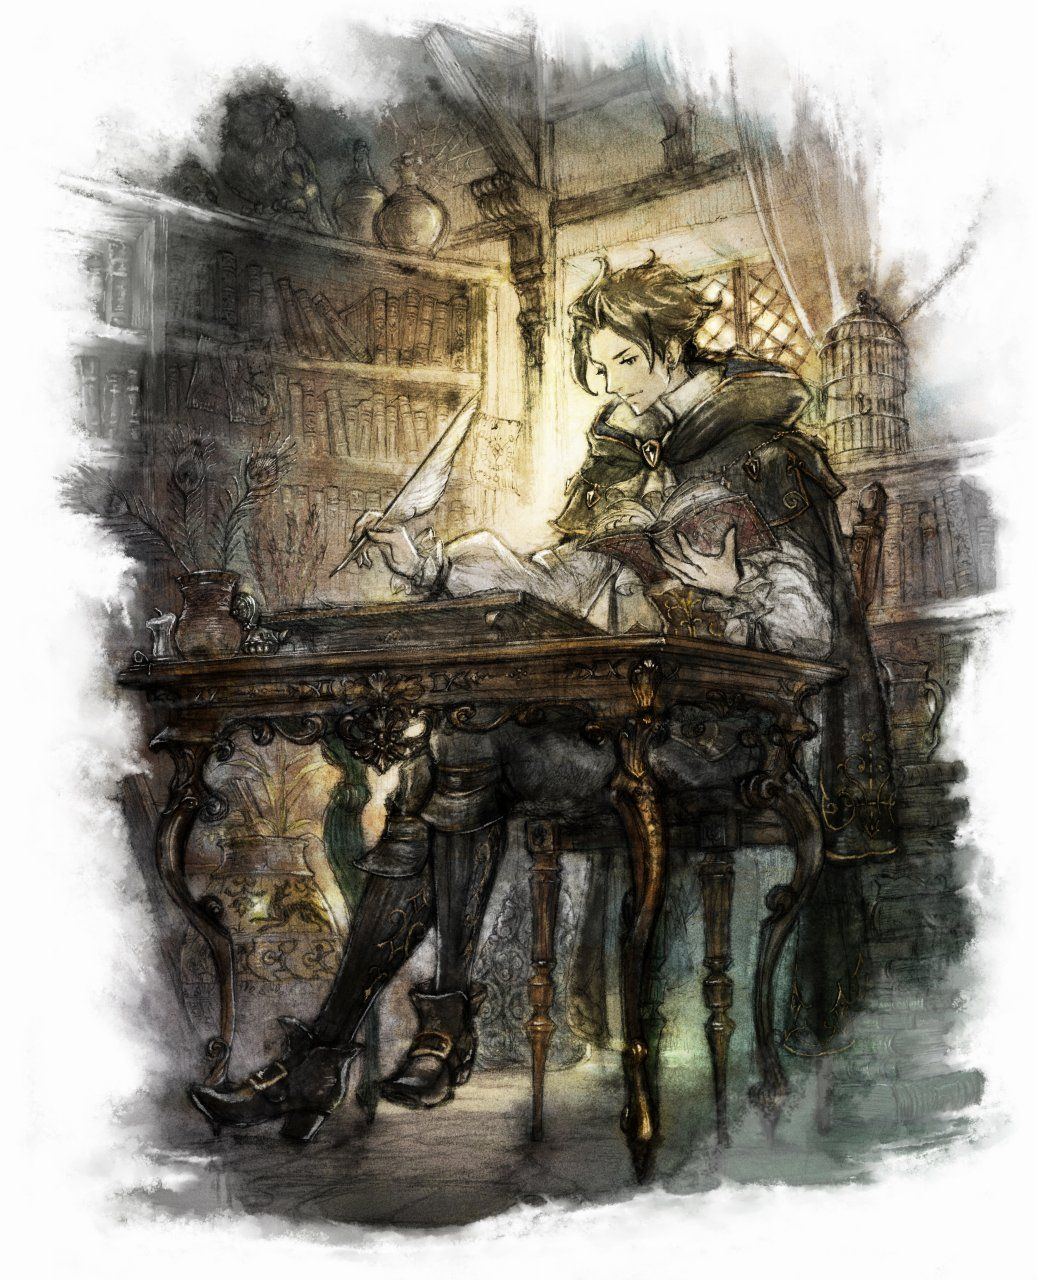 Cyrus Hd Octopath Traveler Traveler Wallpaper Pictures To Draw